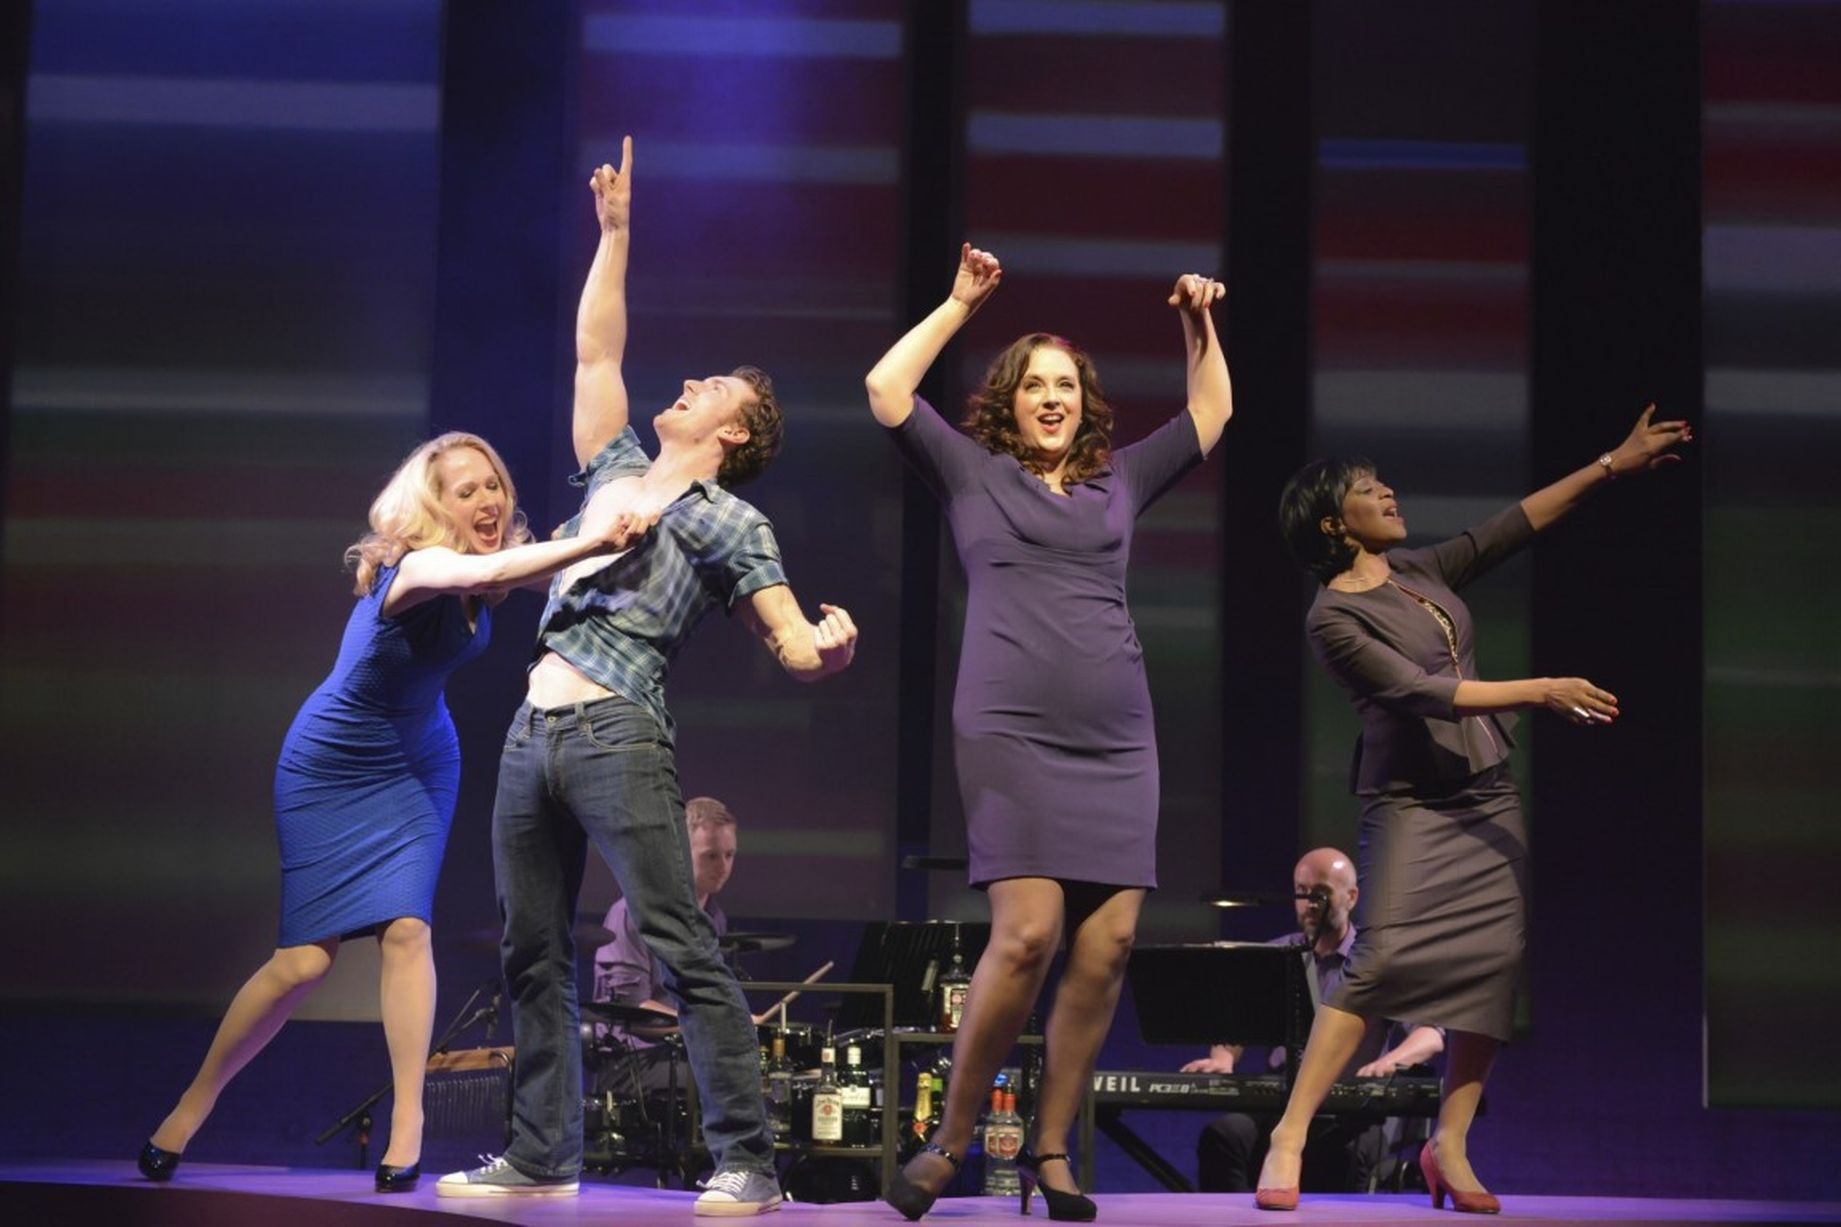 Curtain Call with Barnaby Hughes, Joe Pickering (drums),Suanne Braun, Neil MacDonald (keys)and Dawn Hope